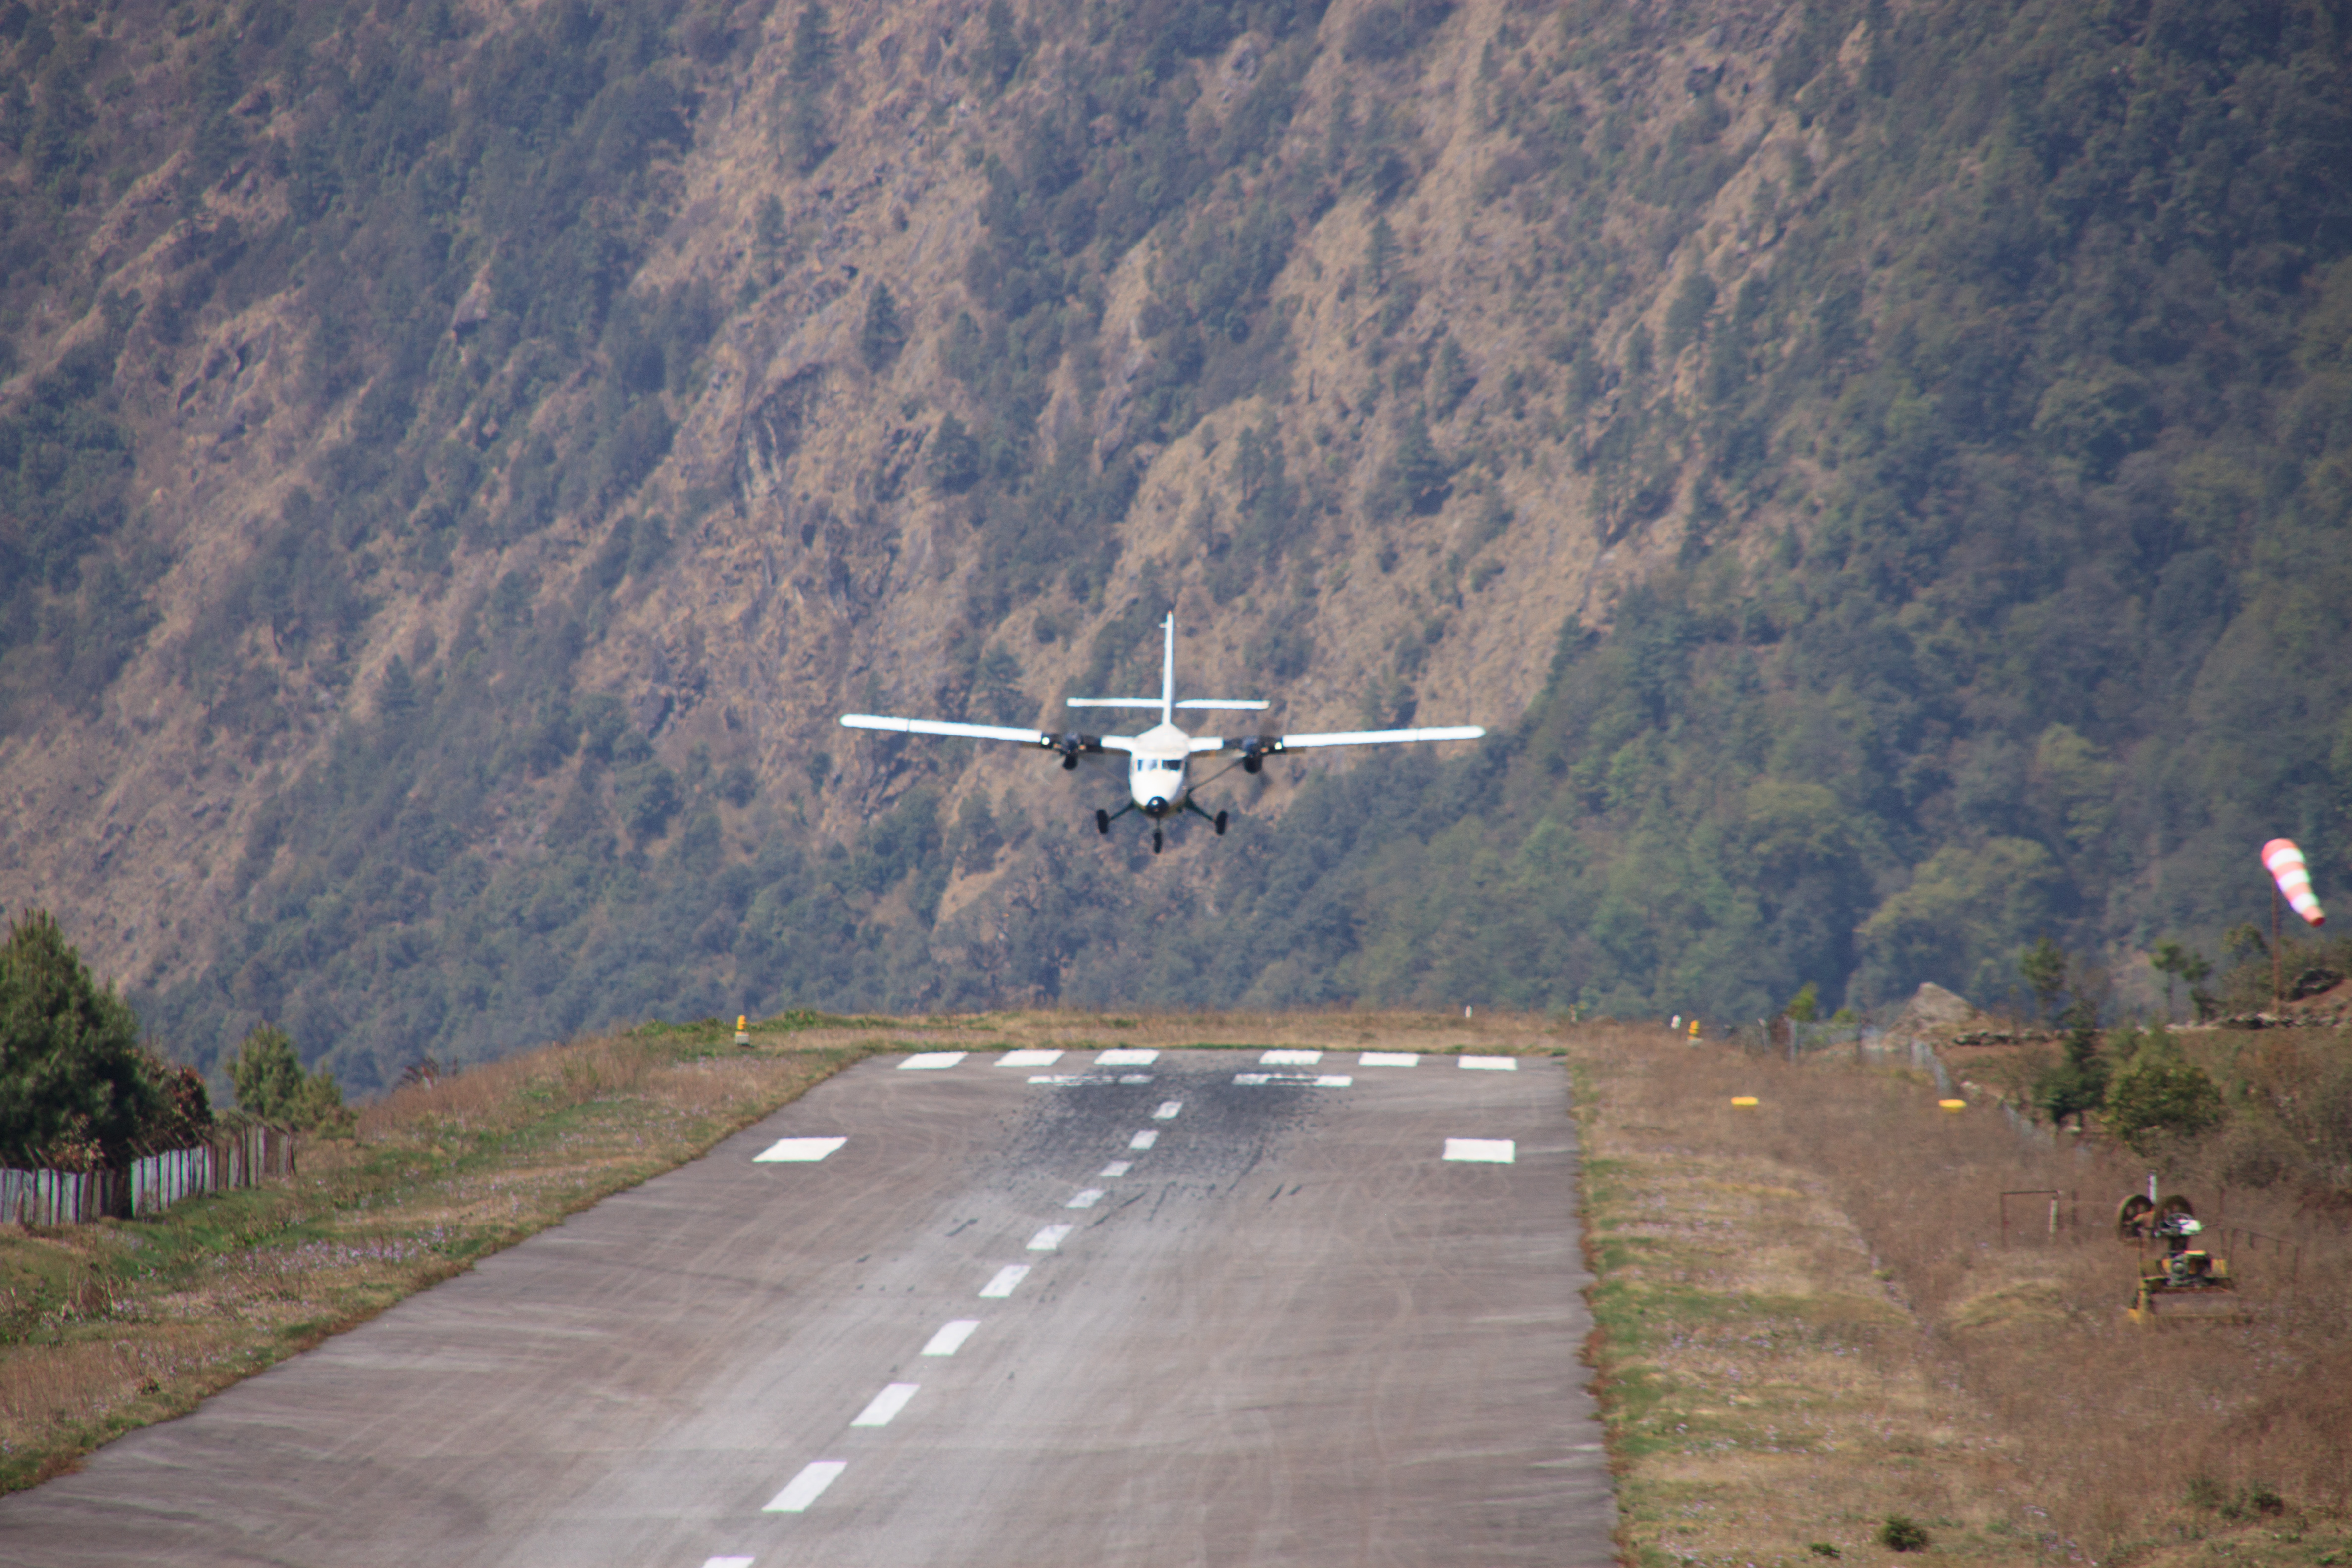 There's only one spot on the runway to land. The fly in beats Alton Towers any day.